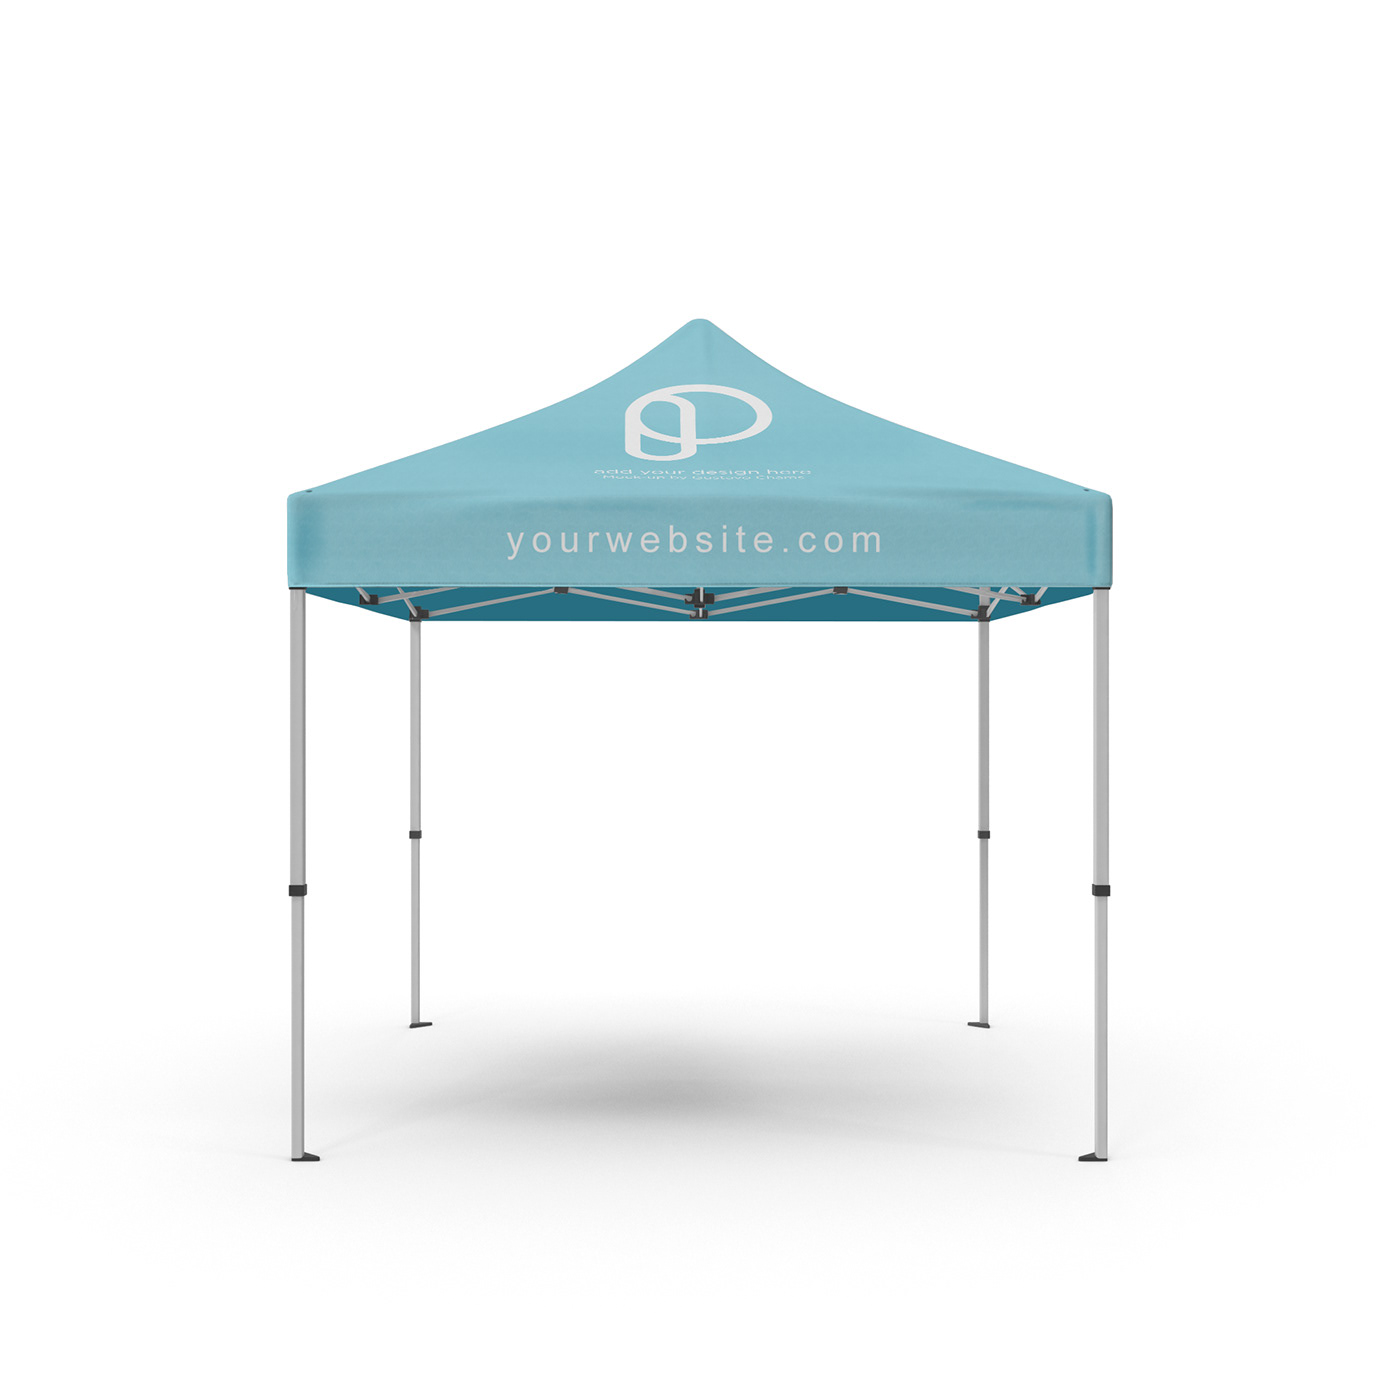 Sign up to join the conversation  sc 1 st  Behance & FREE SQUARE CANOPY TENT MOCKUP - EVENT BOOTH 10x10 on Behance